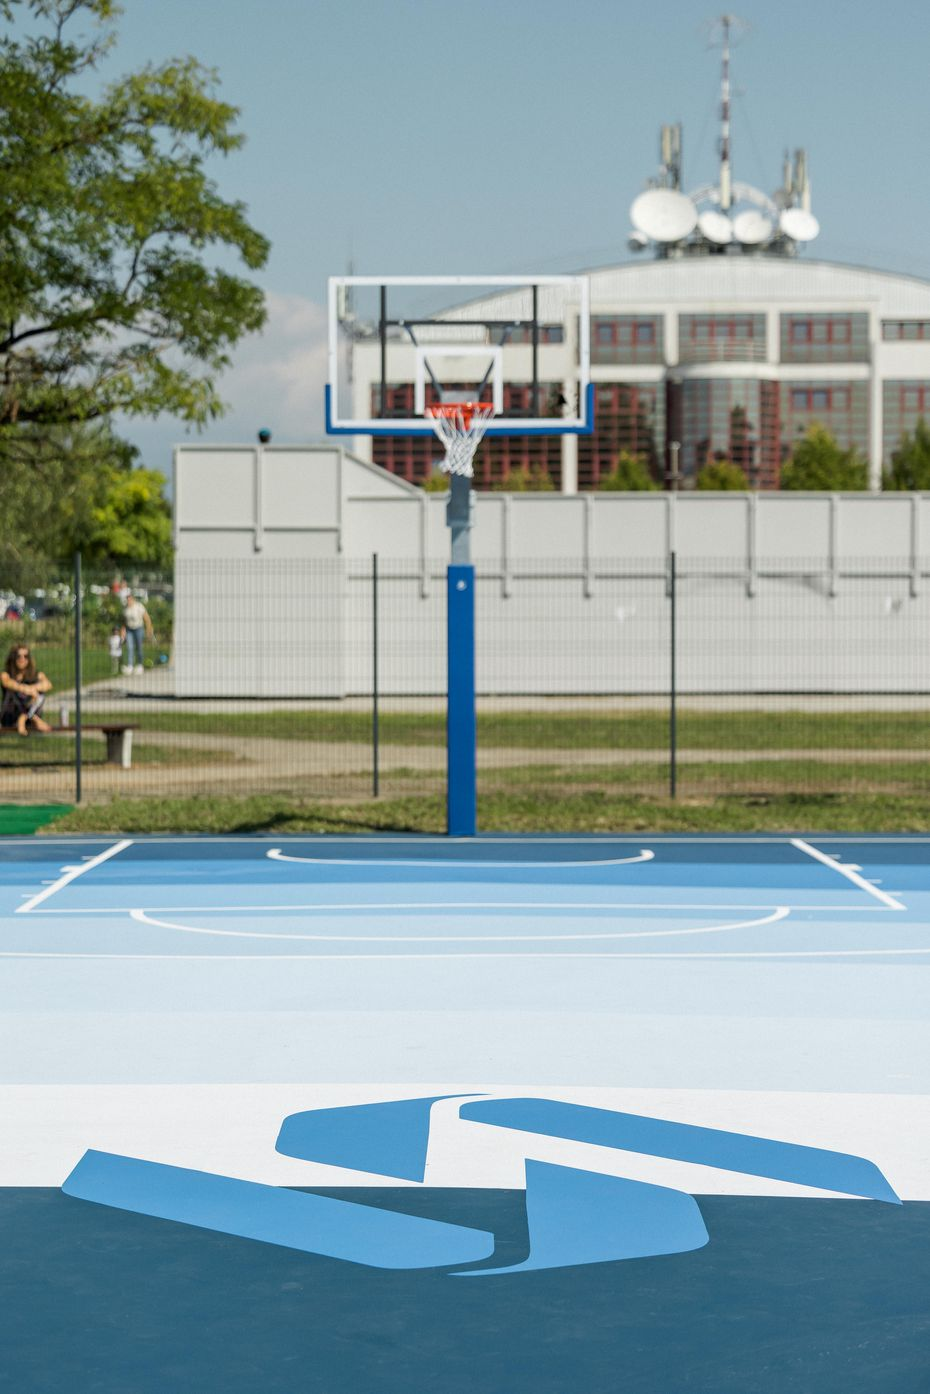 A look at the brand new courts Luka Doncic designed for his home town of Ljubljana, Slovenia. The new courts were part of a charitable effort from Doncic and 2K Foundations, the philanthropic arm of 2K.